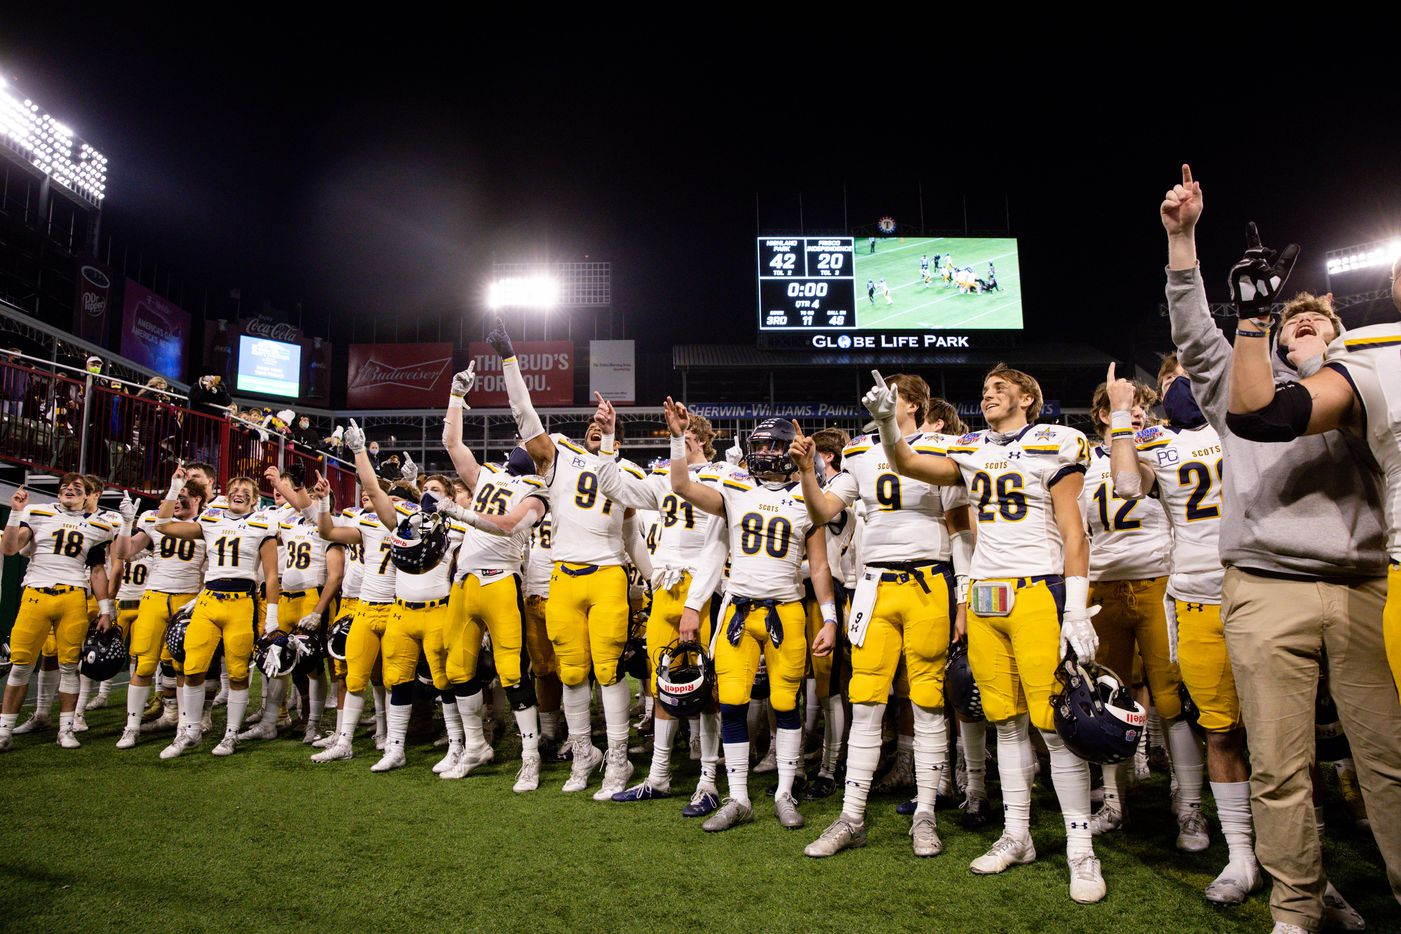 Highland Park players sing their school song after winning a Class 5A Division I area-round playoff game against Frisco Independence at Globe Life Park in Arlington on Thursday, Dec. 17, 2020. Highland Park won 42-20. (Juan Figueroa/ The Dallas Morning News)